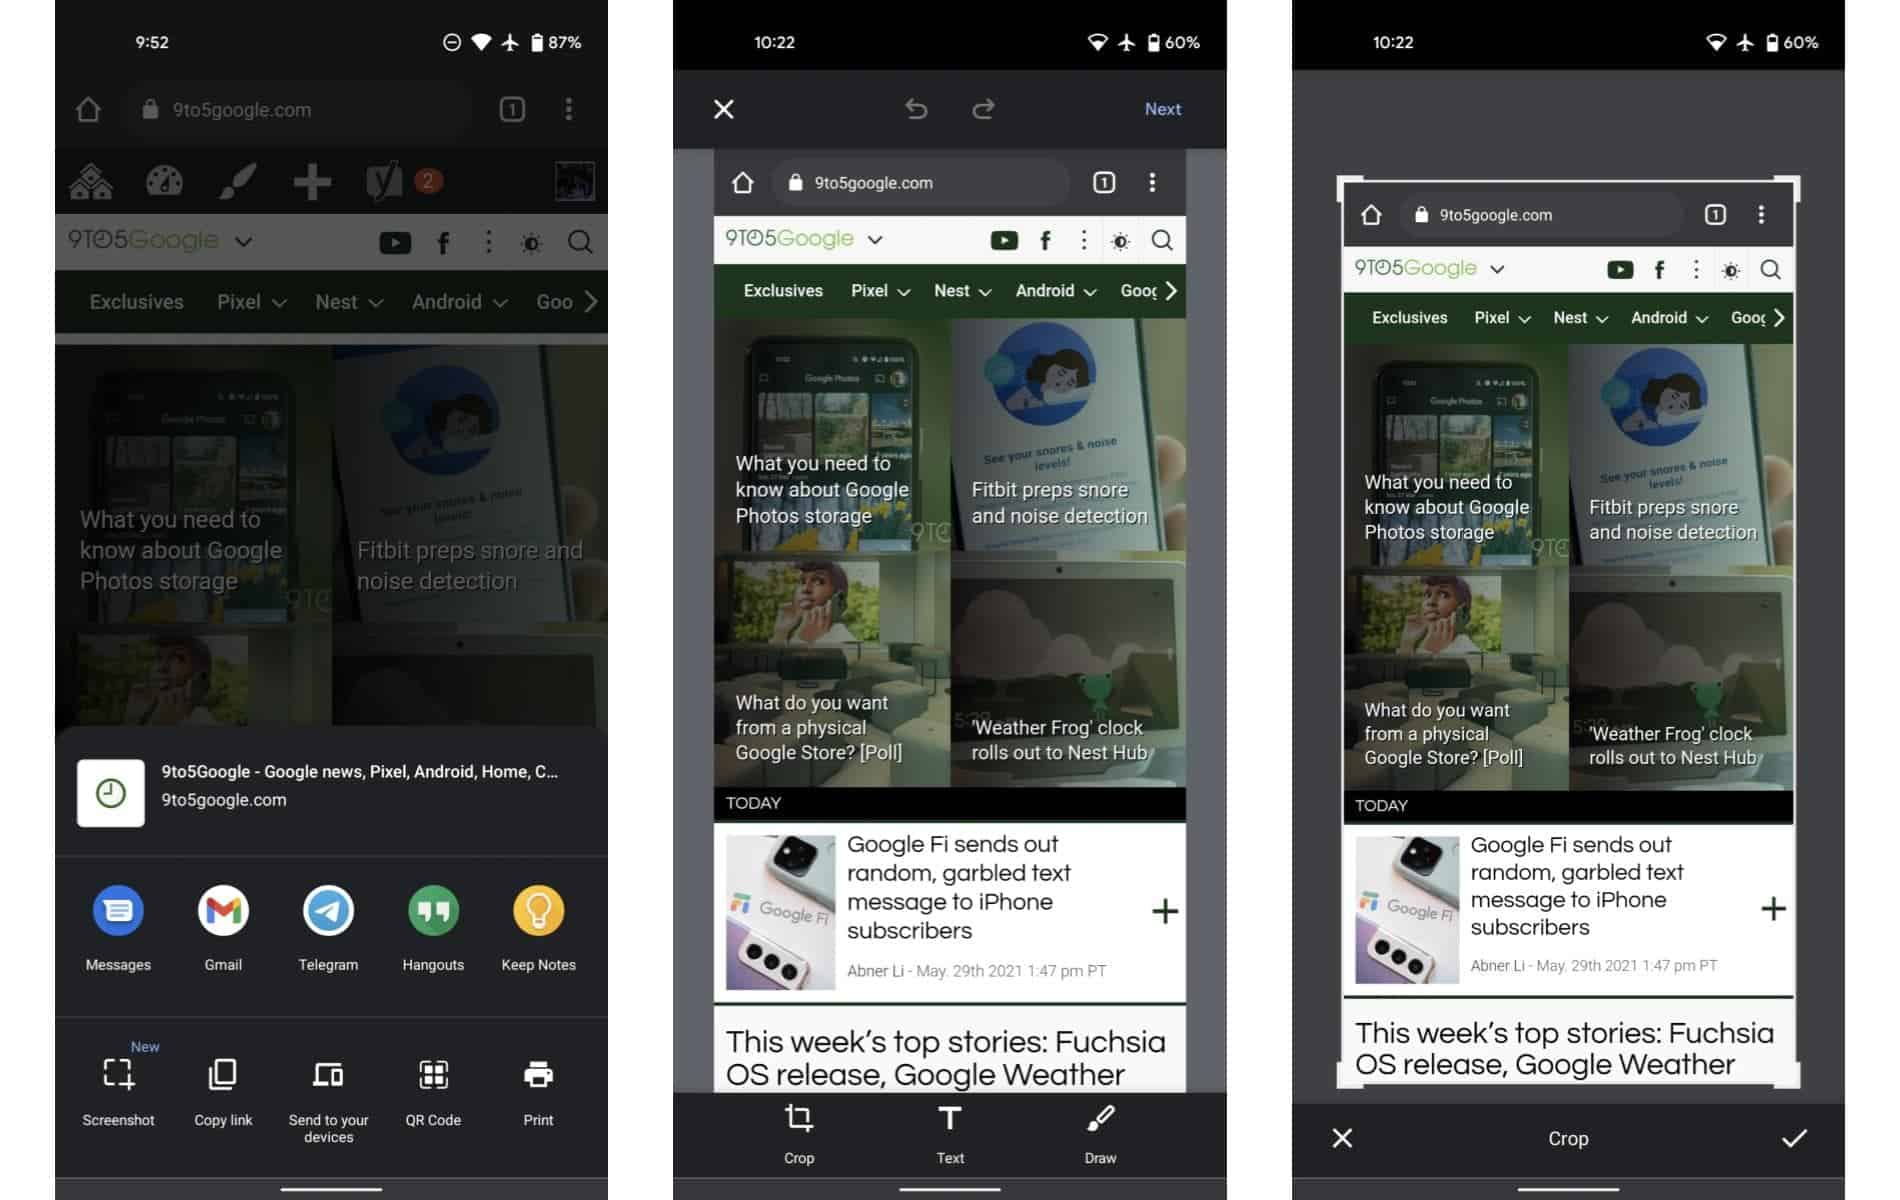 Chrome 91 screenshots on Android from 9to5Google